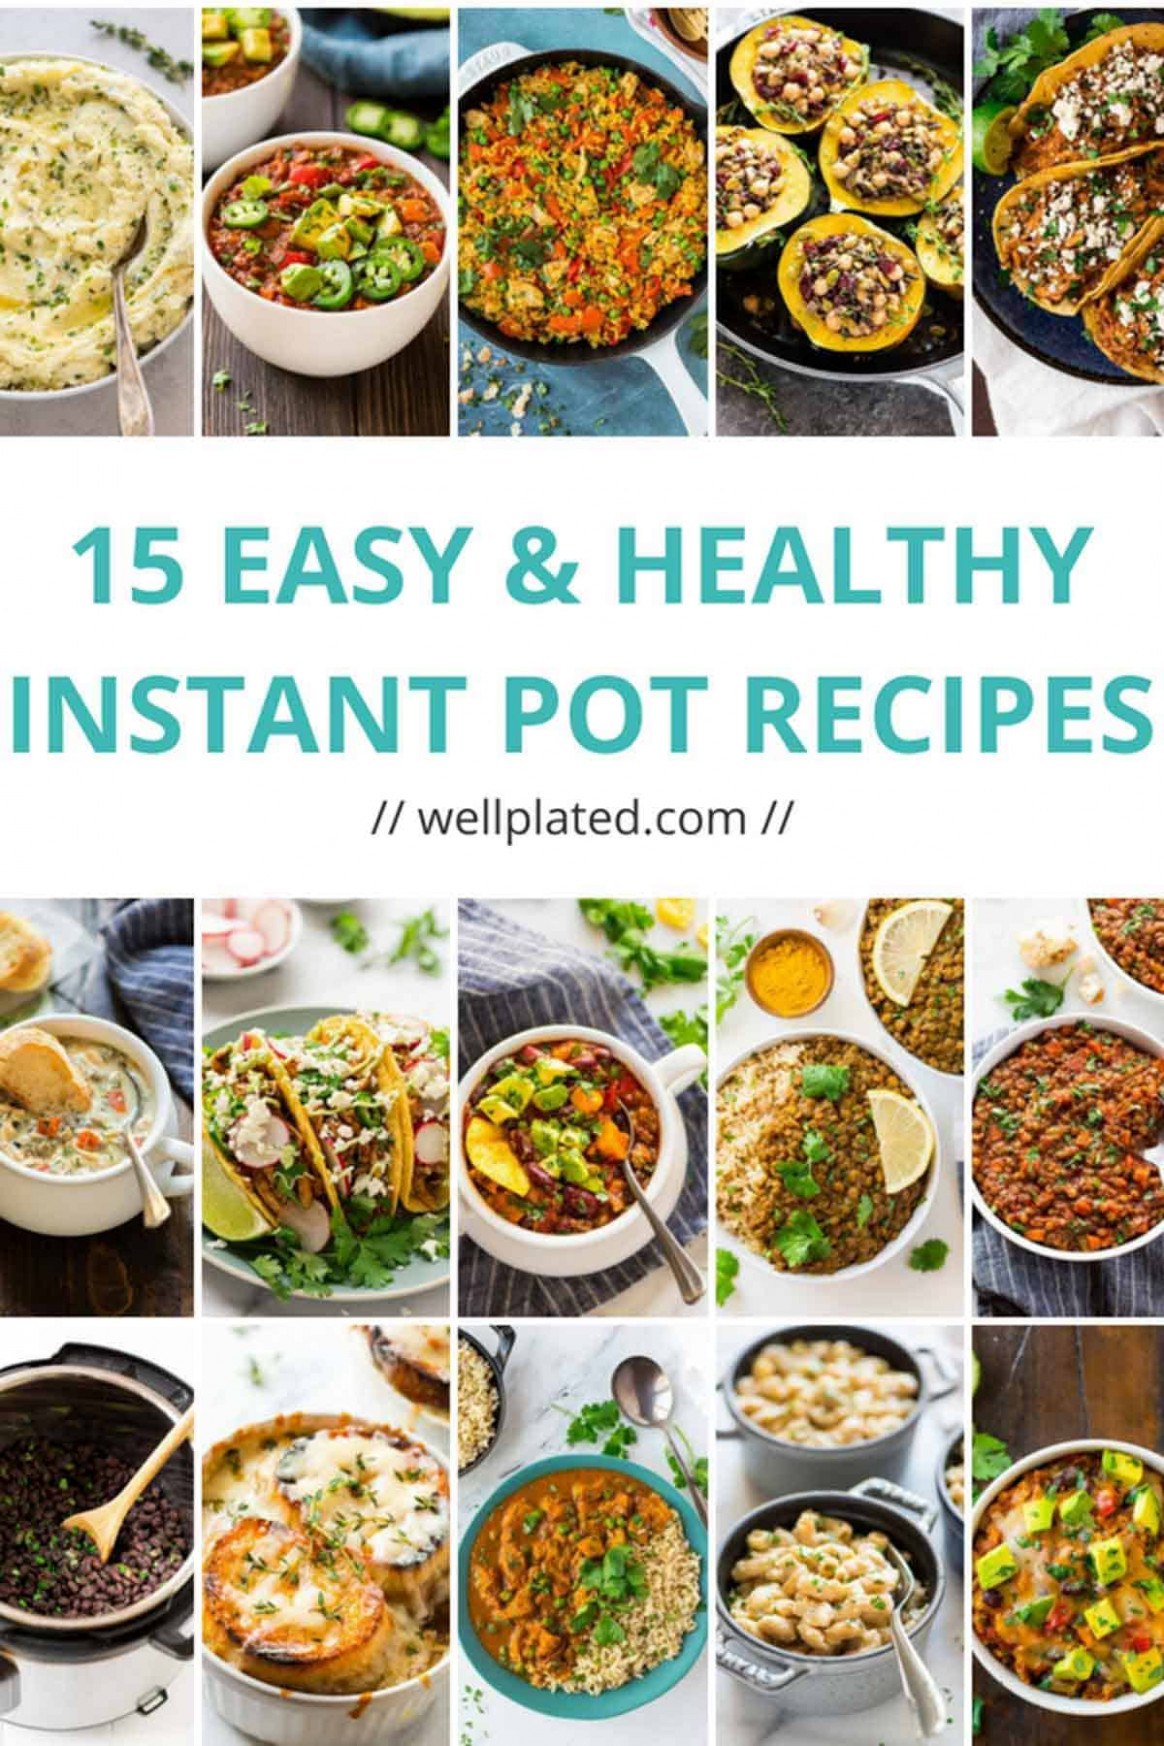 11 Healthy Instant Pot Recipes That Anyone Can Make - instant pot recipes easy healthy